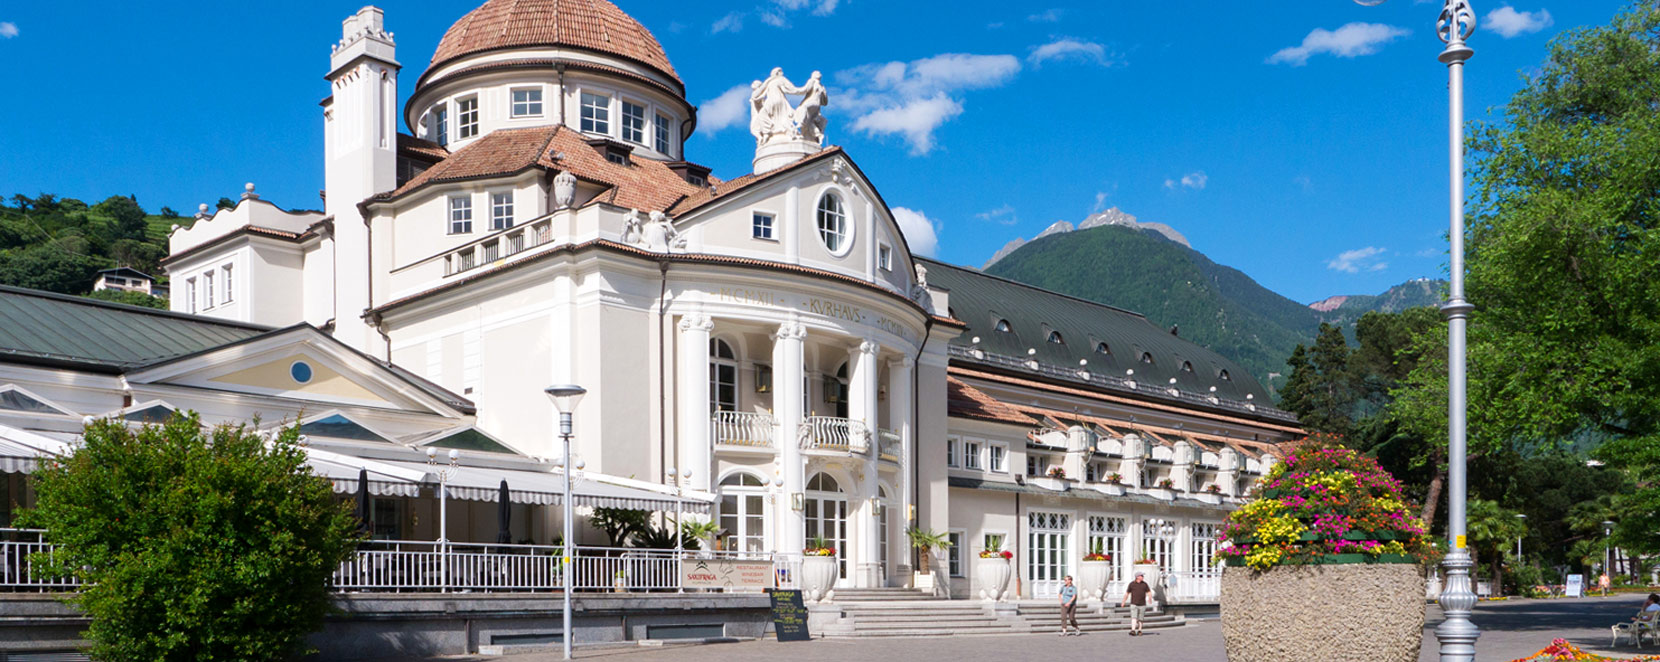 Merano Kurhaus in Merano South Tyrol